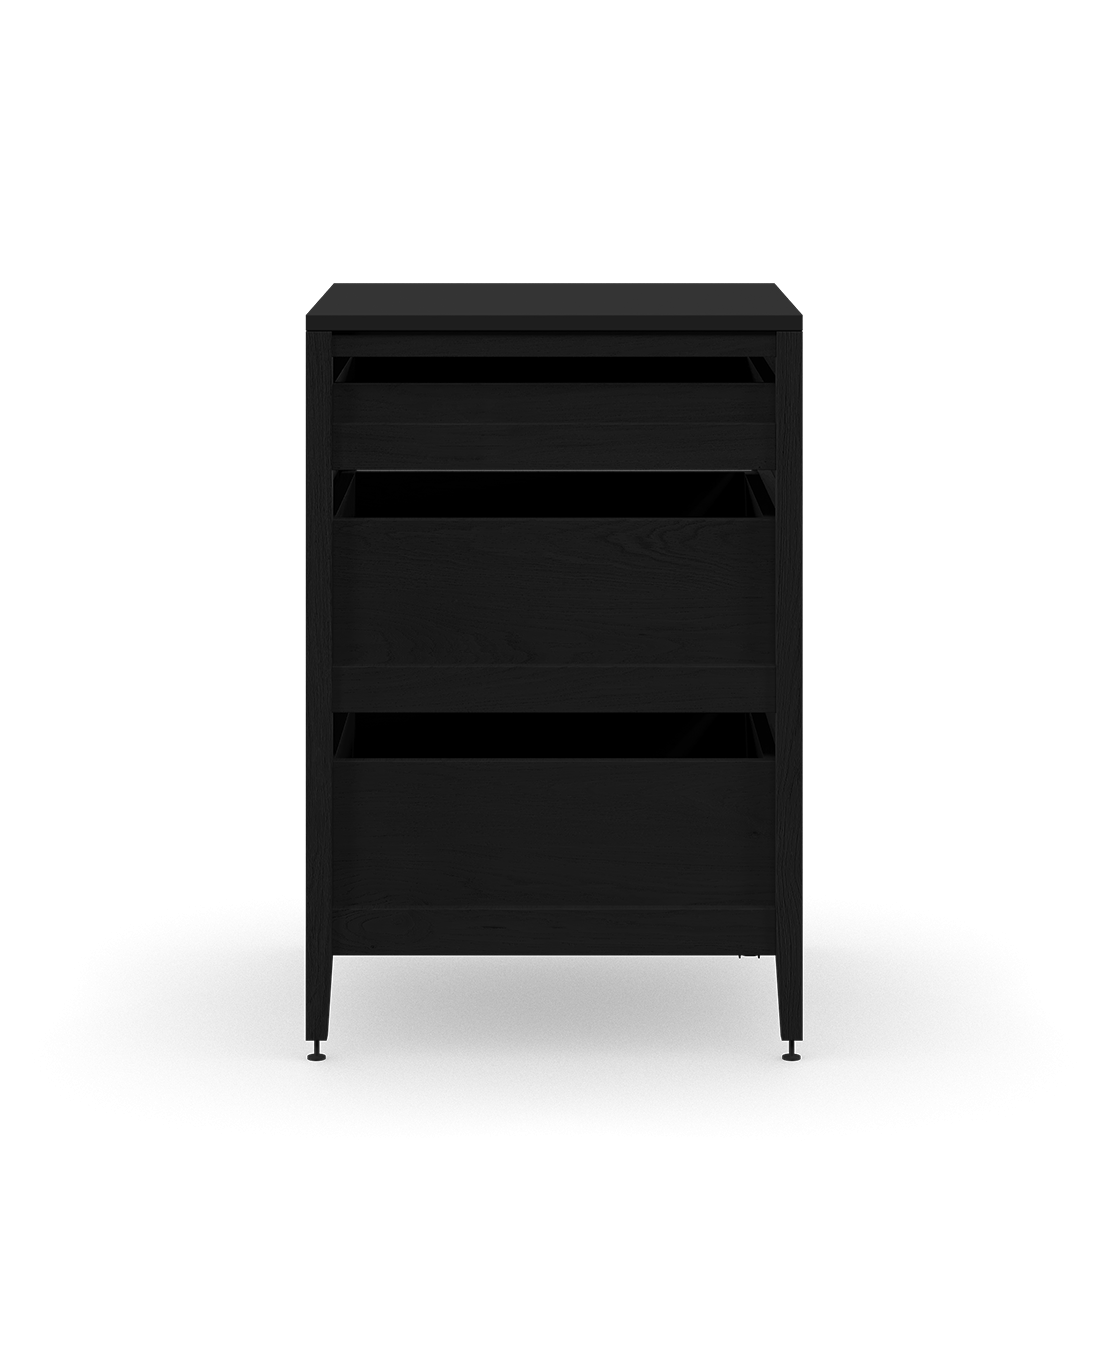 coquo radix midnight black stained oak solid wood modular 3 drawers base kitchen cabinet 24 inch C1-C-24TB-3002-BK